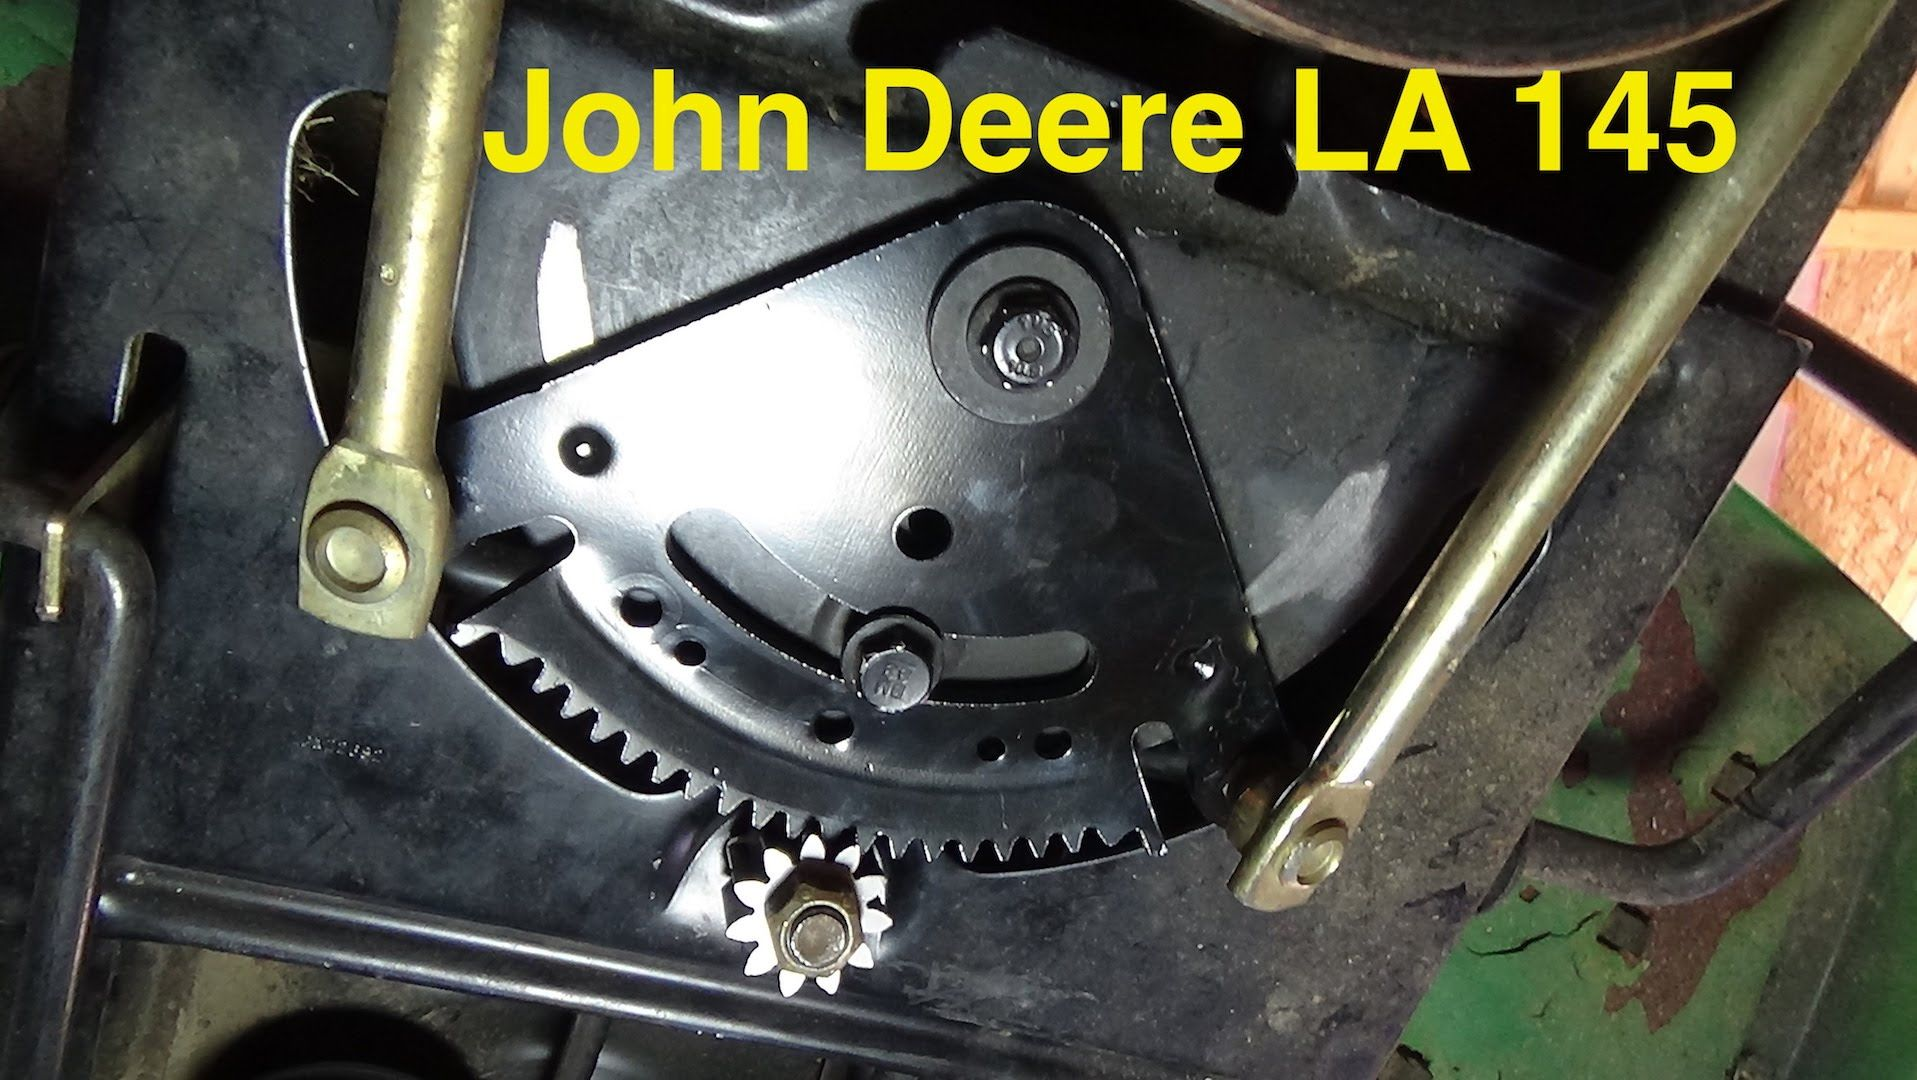 Steering Sector Pinion Gear Replacement John Deere La145 Riding. Steering Sector Pinion Gear Replacement John Deere La145 Riding Mower. John Deere. John Deere Lawn Mower Electrical Diagram Solendid At Scoala.co